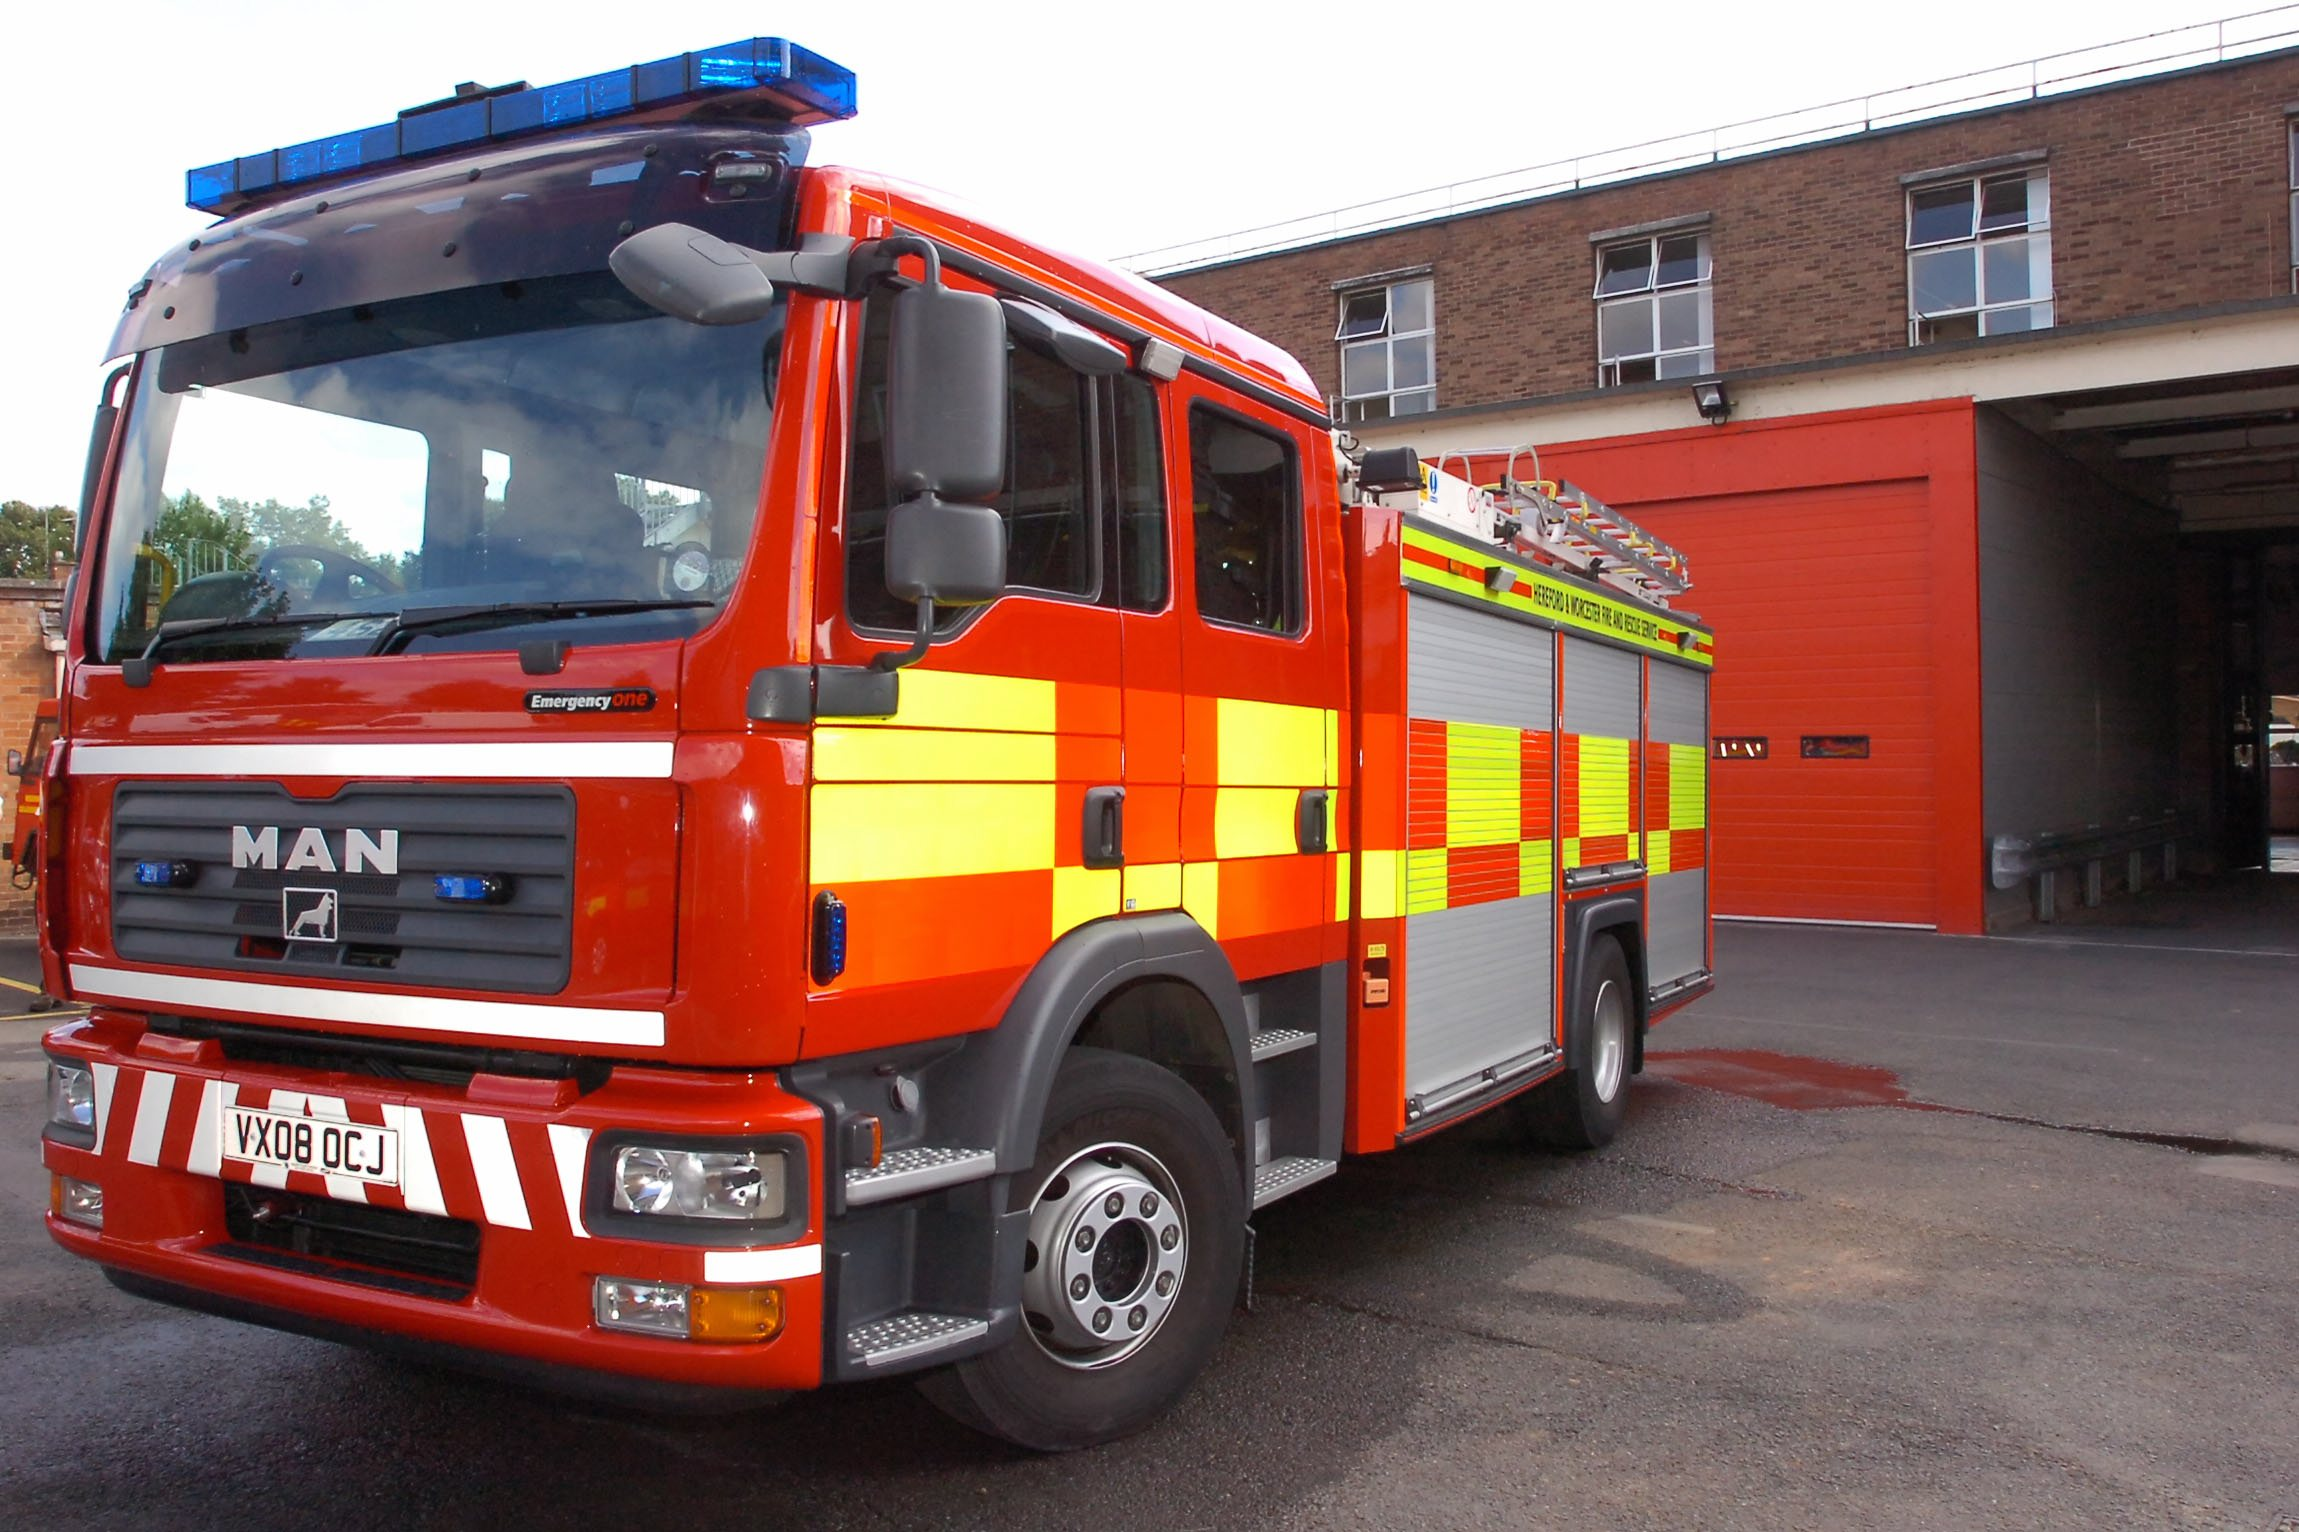 Fire starts in bedroom at Hereford house